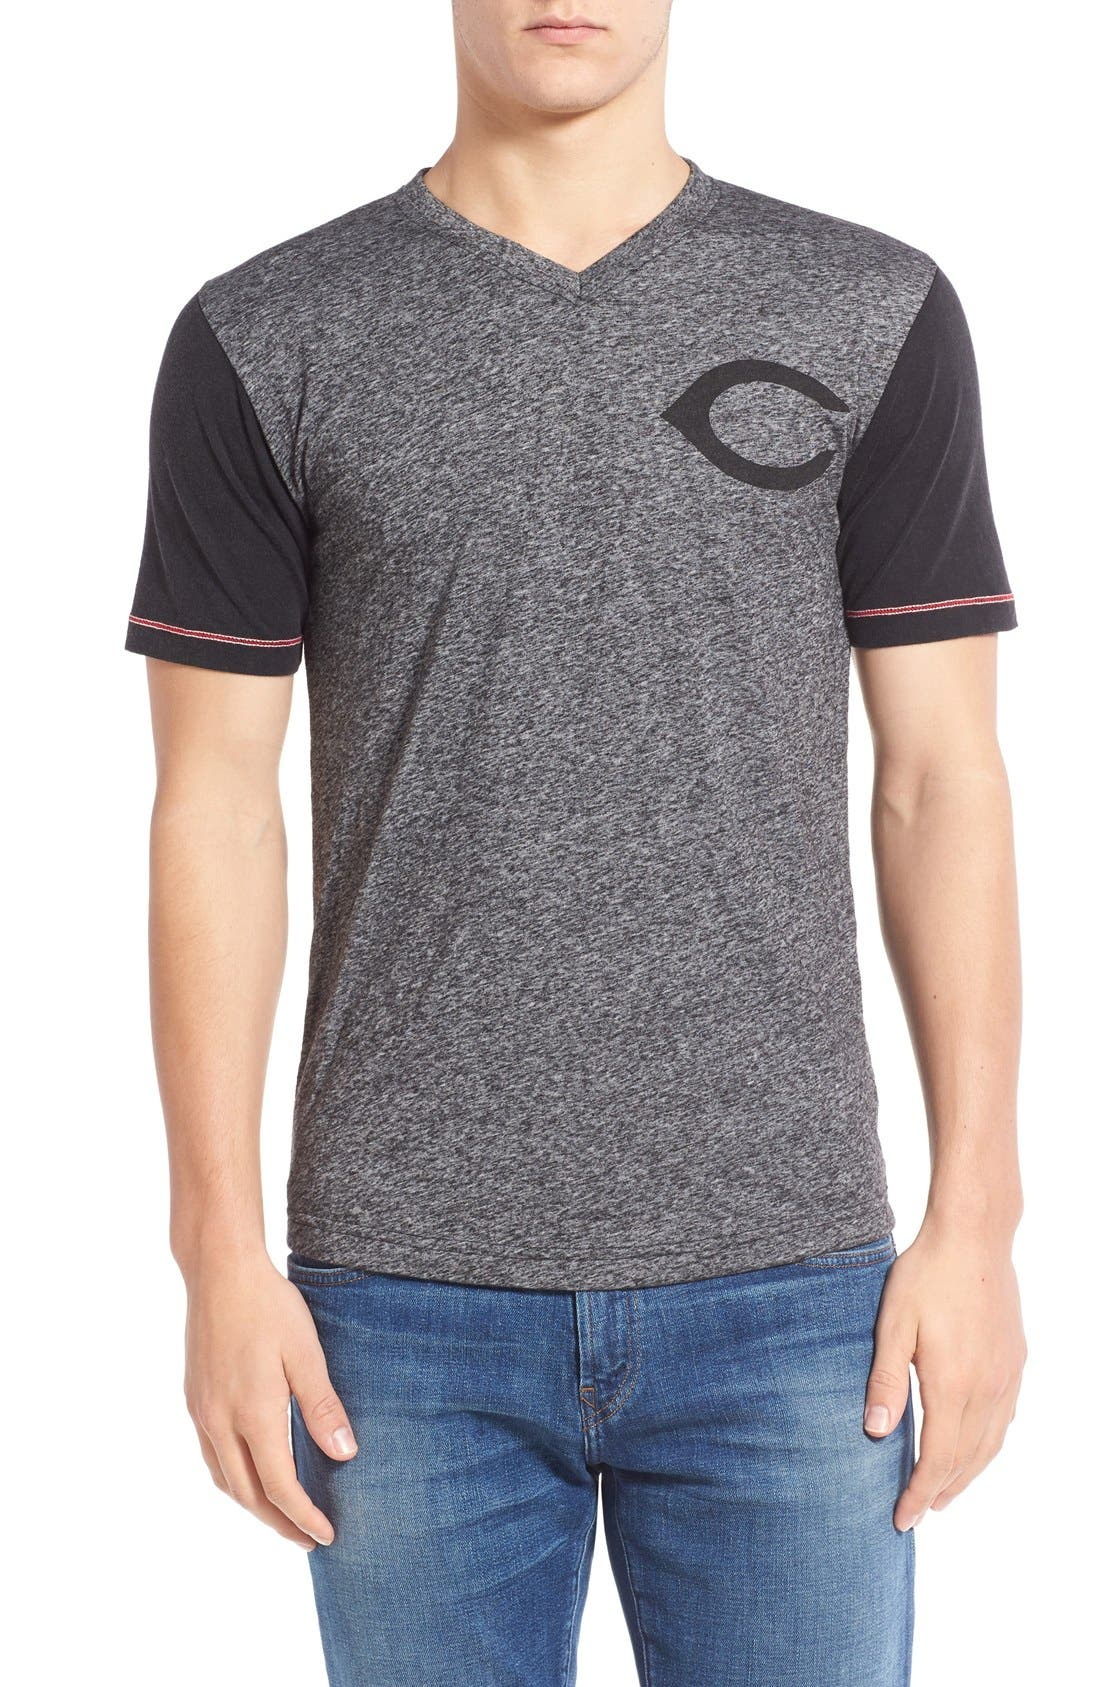 'Cincinnati Reds - Onyx' Trim Fit V-Neck T-Shirt,                             Main thumbnail 1, color,                             Charcoal-Black